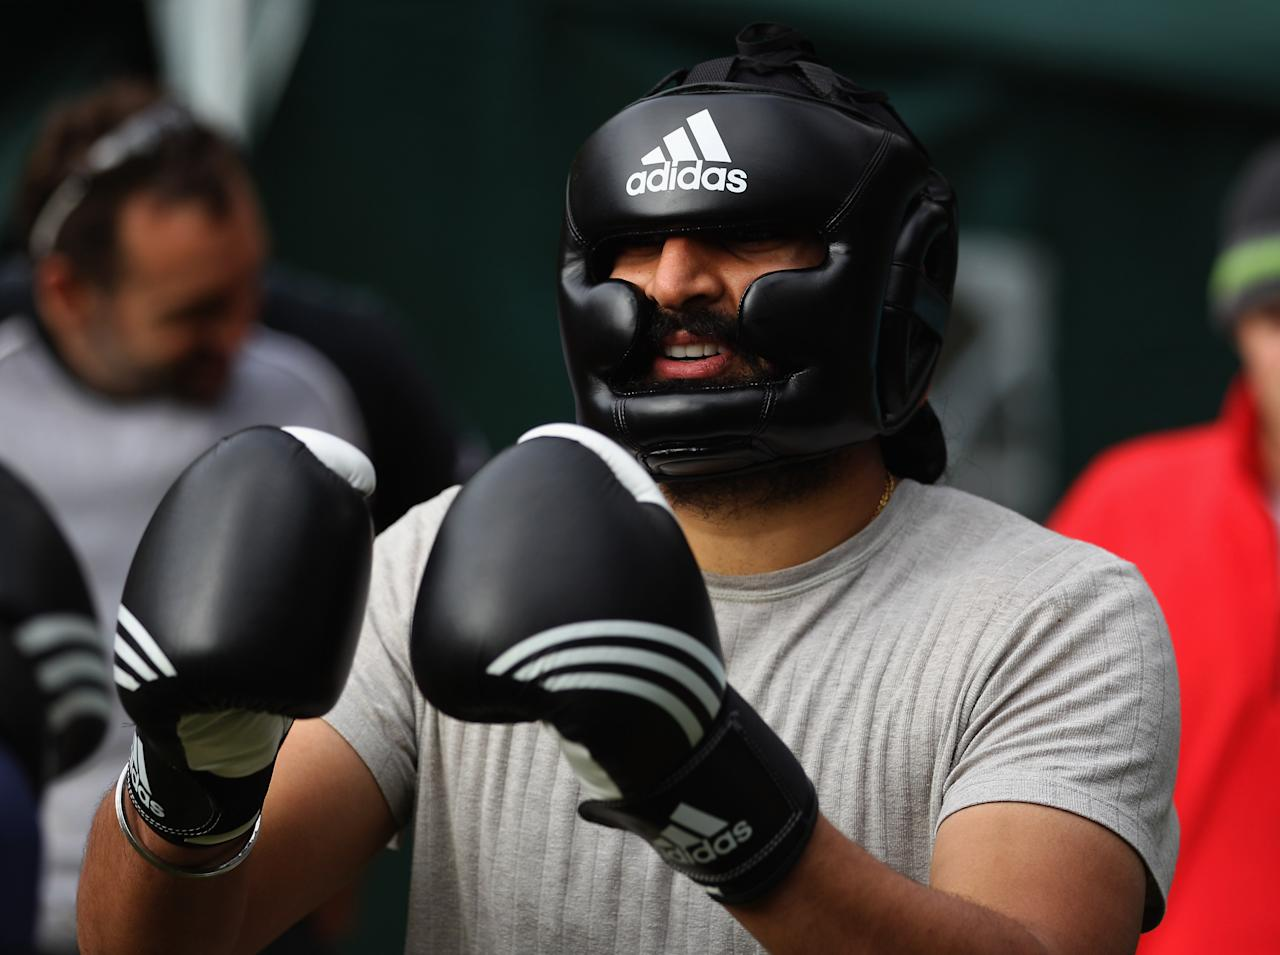 NUREMBERG, GERMANY - SEPTEMBER 26:  England player Monty Panesar prepares before a bout in the boxing excercise during the England Cricket squad Pre Ashes Training Camp on September 26, 2010 near Nuremberg, Germany.  (Photo by Stu Forster/Getty Images)